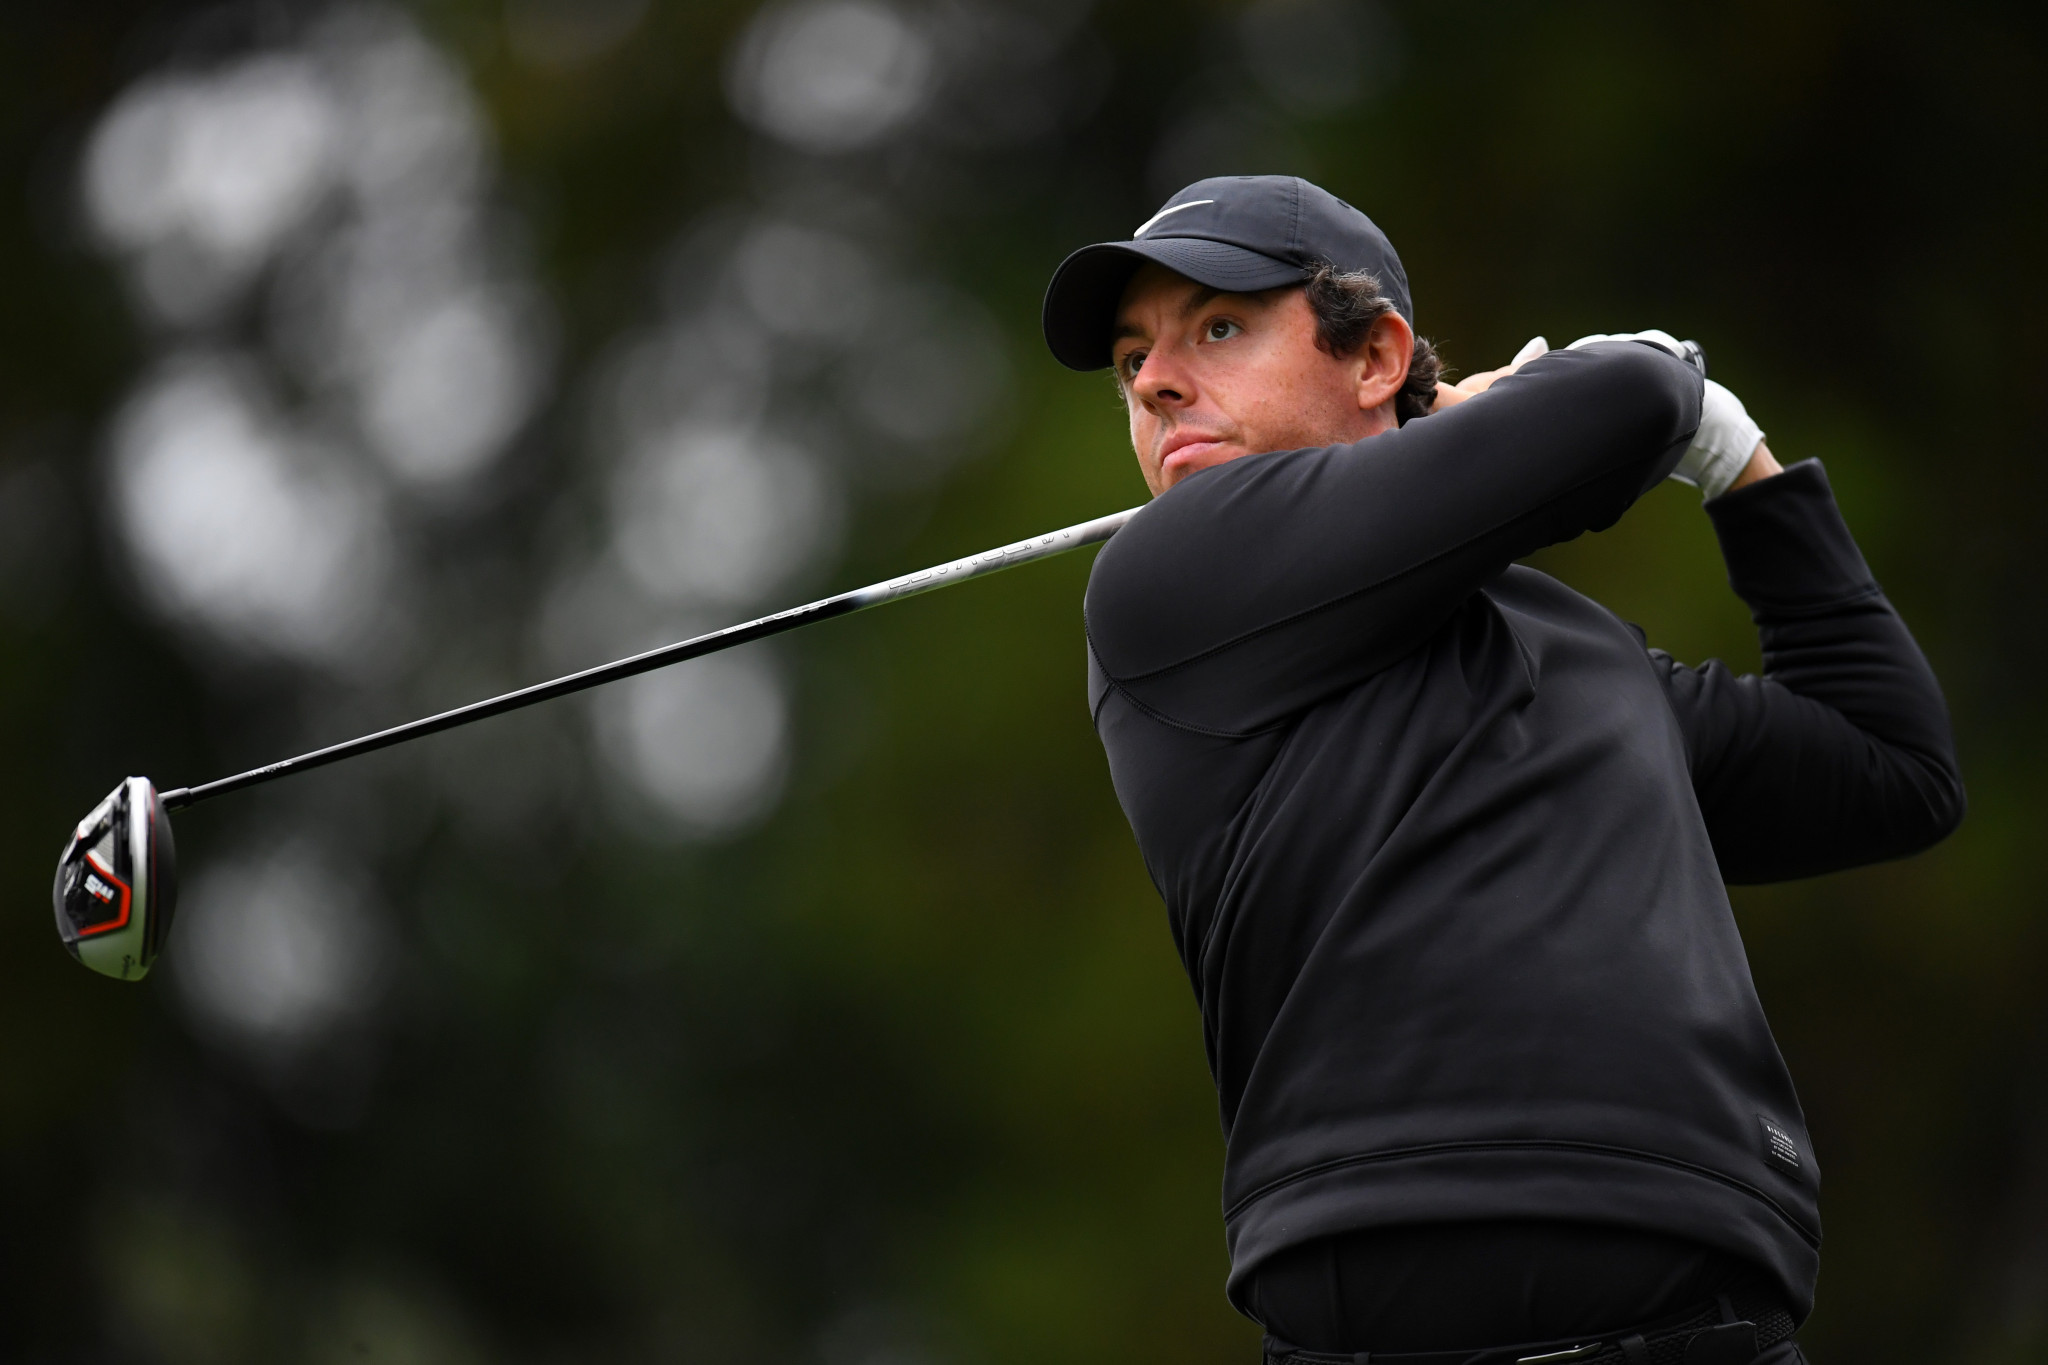 Golfer Rory McIlroy has confirmed he will represent Ireland at Tokyo 2020 ©Getty Images